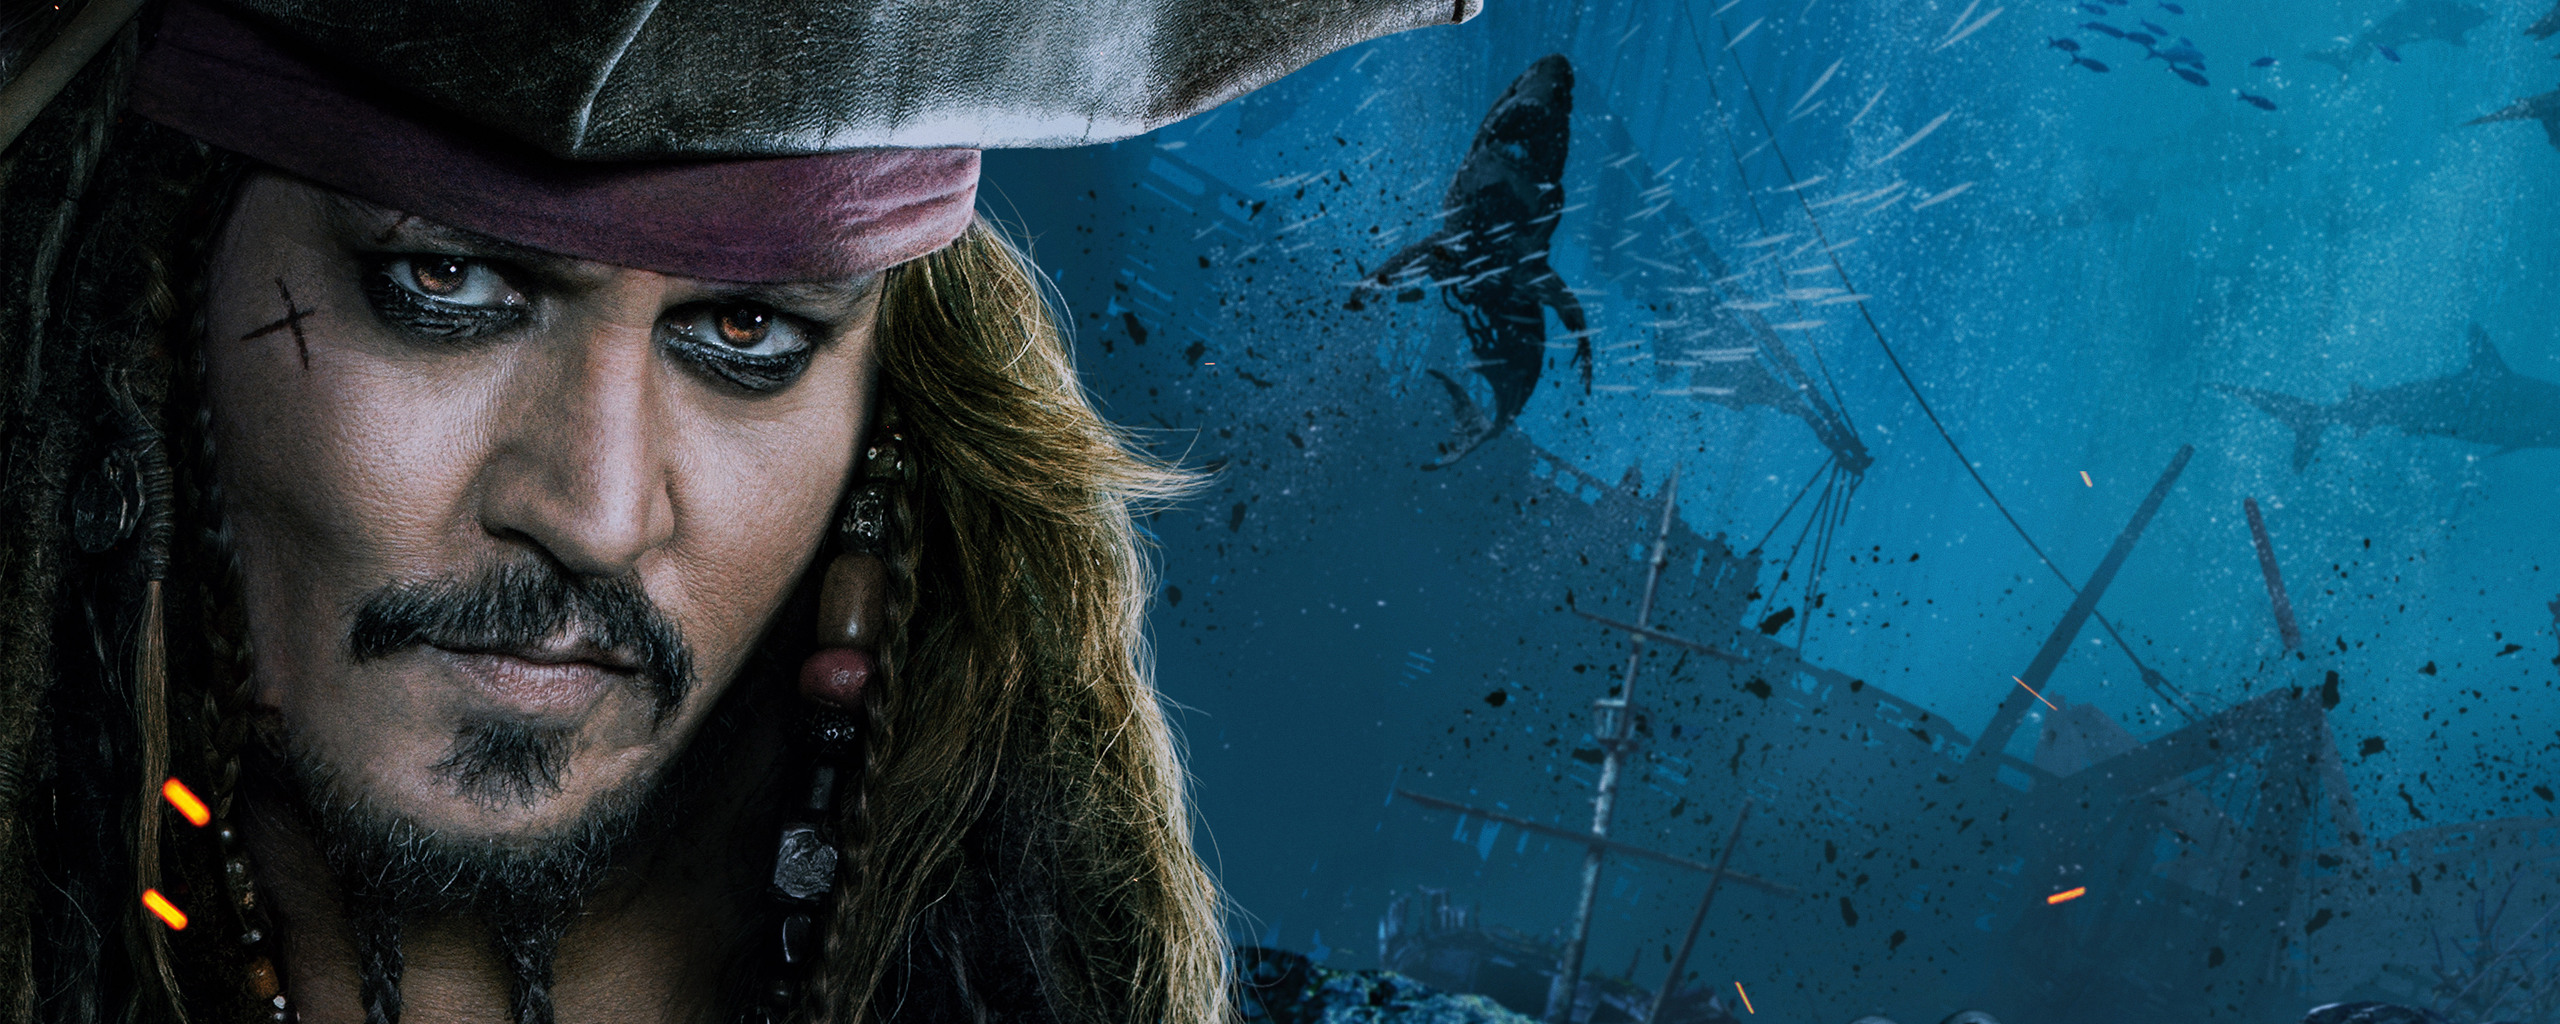 2560x1024 Jack Sparrow Pirates Of The Caribbean Dead Men Tell No Tales 4k 2560x1024 Resolution Hd 4k Wallpapers Images Backgrounds Photos And Pictures